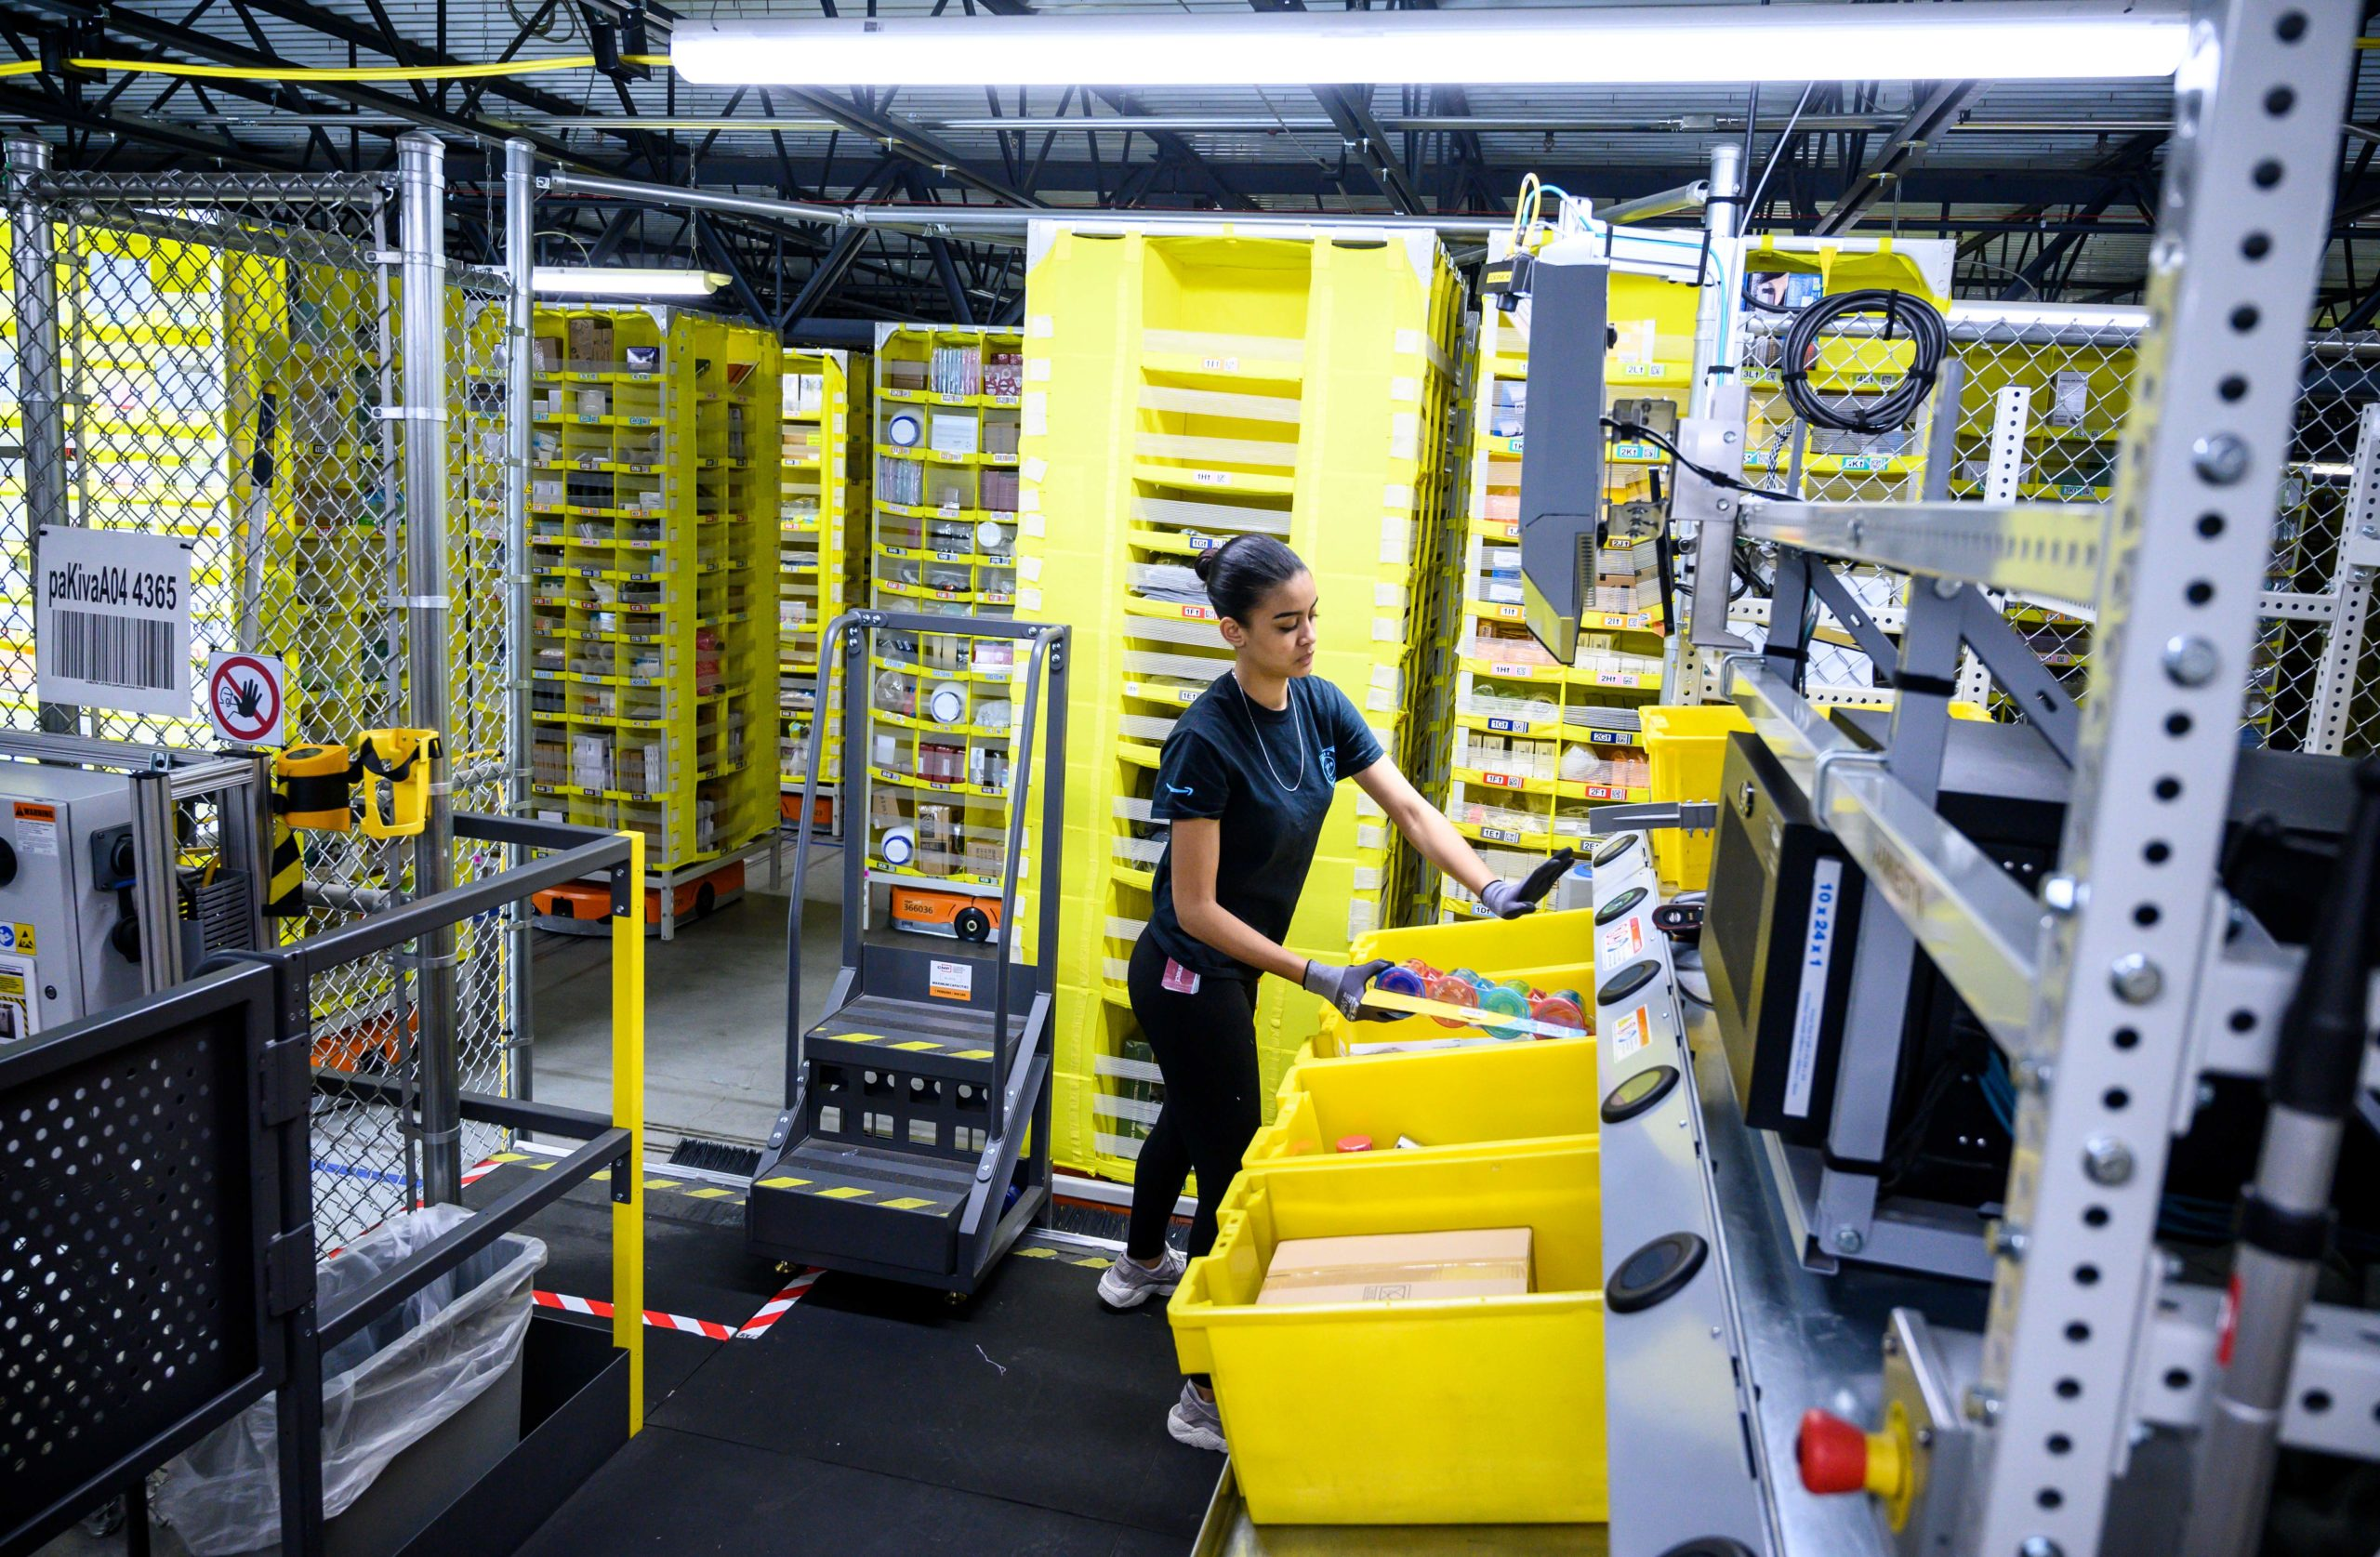 A woman works at a distribution station at the 855,000-square-foot Amazon fulfillment center in Staten Island, New York in 2019. (Johannes Eisele/AFP via Getty Images)